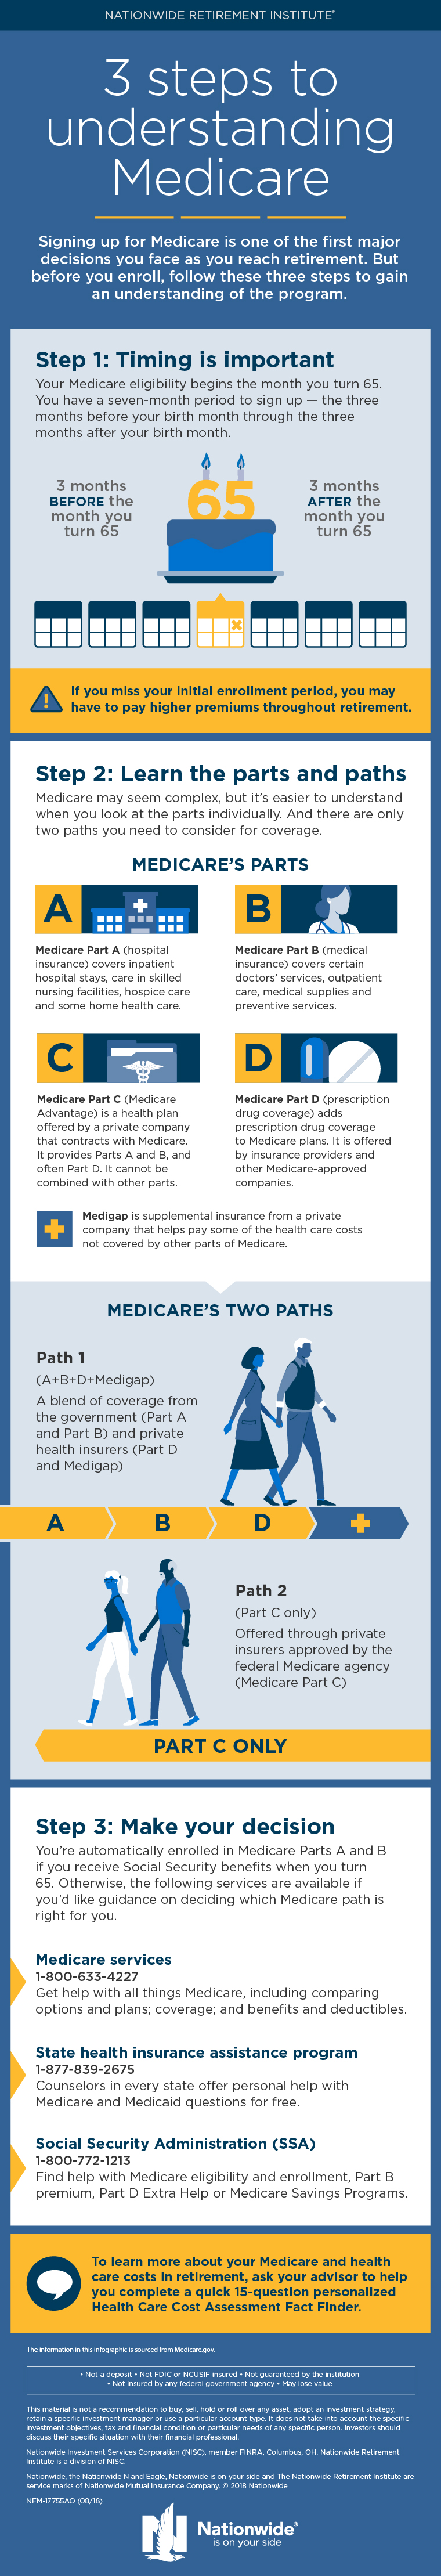 Medicare and Health Care Cost